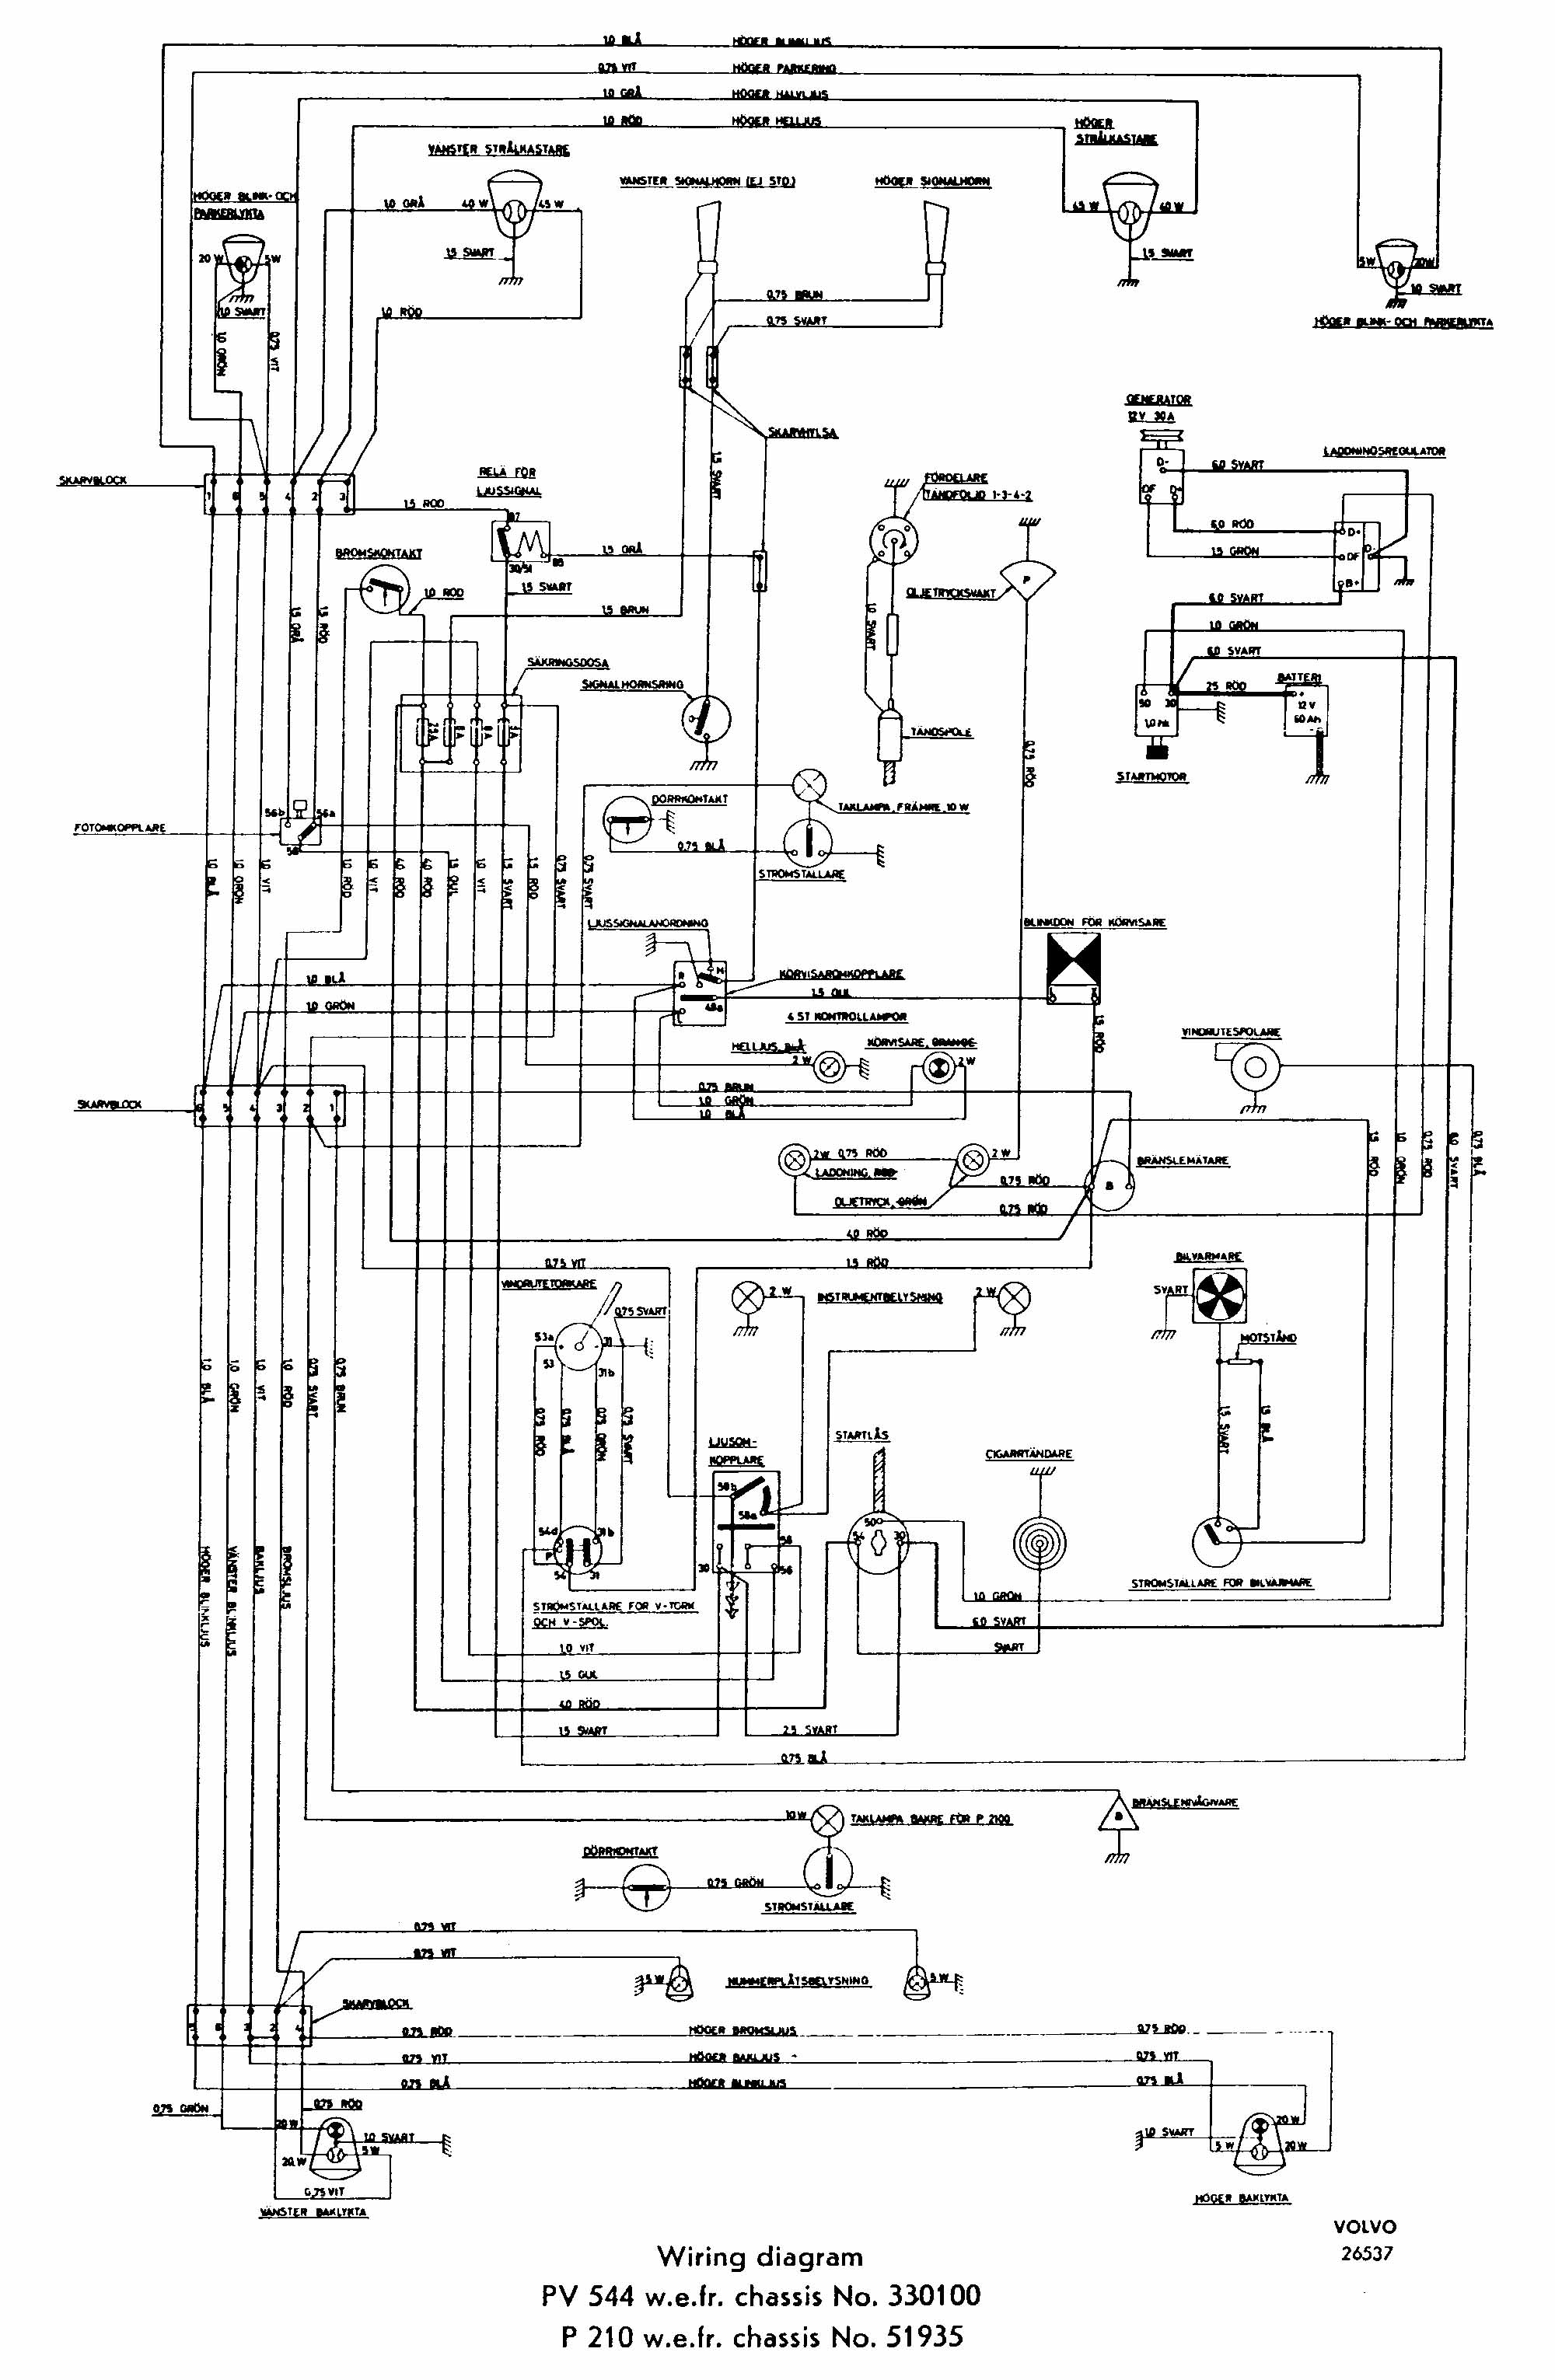 Volvo 122 Wiring Diagram Content Resource Of Wiring Diagram \u2022 Omega  Wiring Diagrams Em Wiring Diagrams